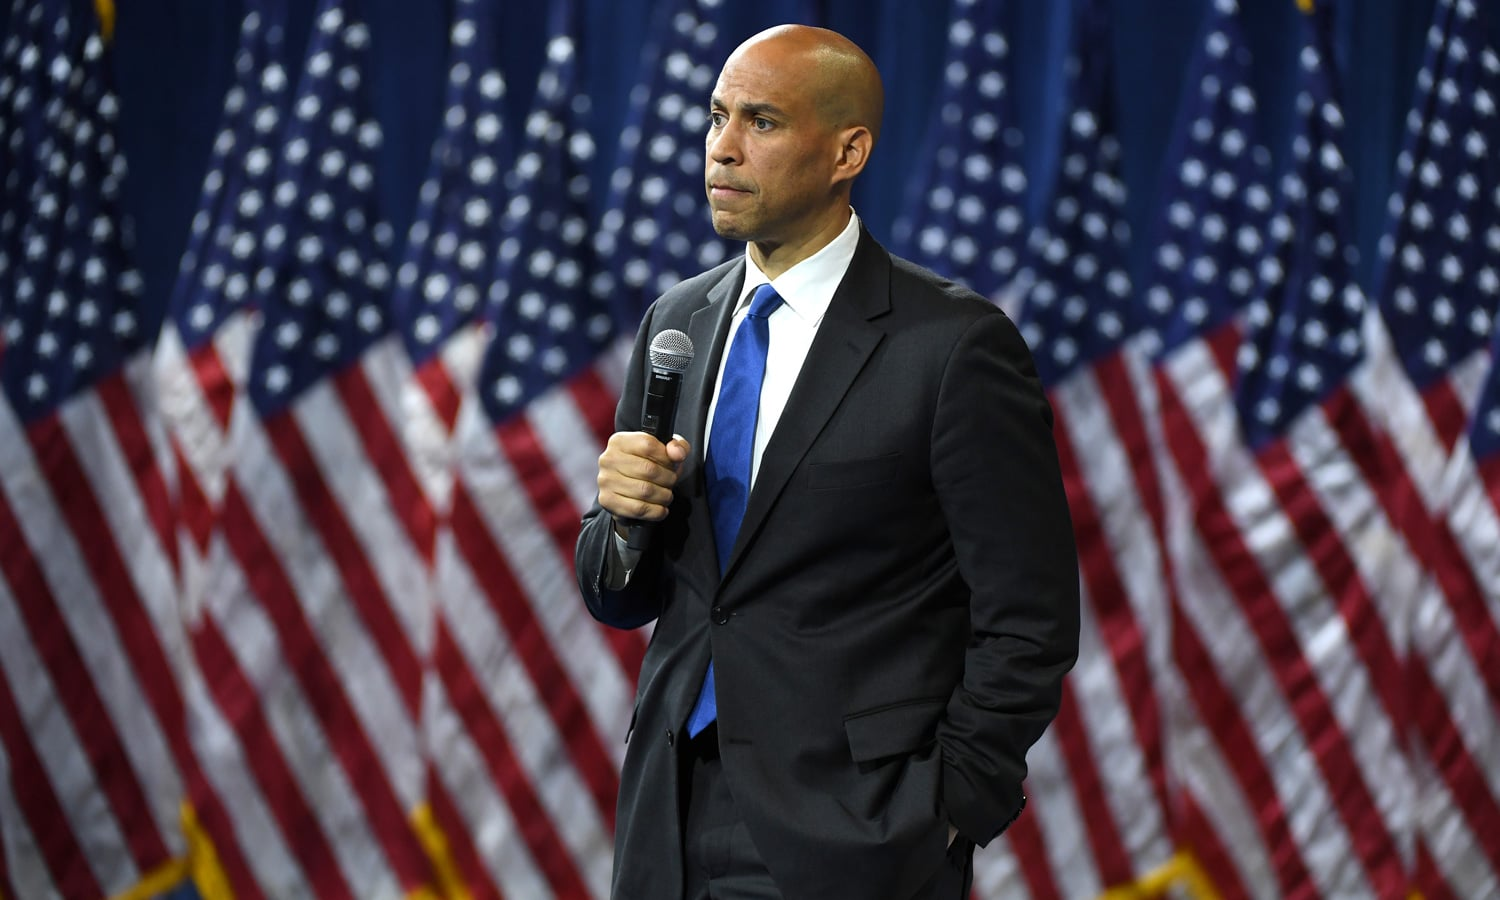 Cory Booker: Marijuana Enforcement Shows Racist Policies Inspiring Protests